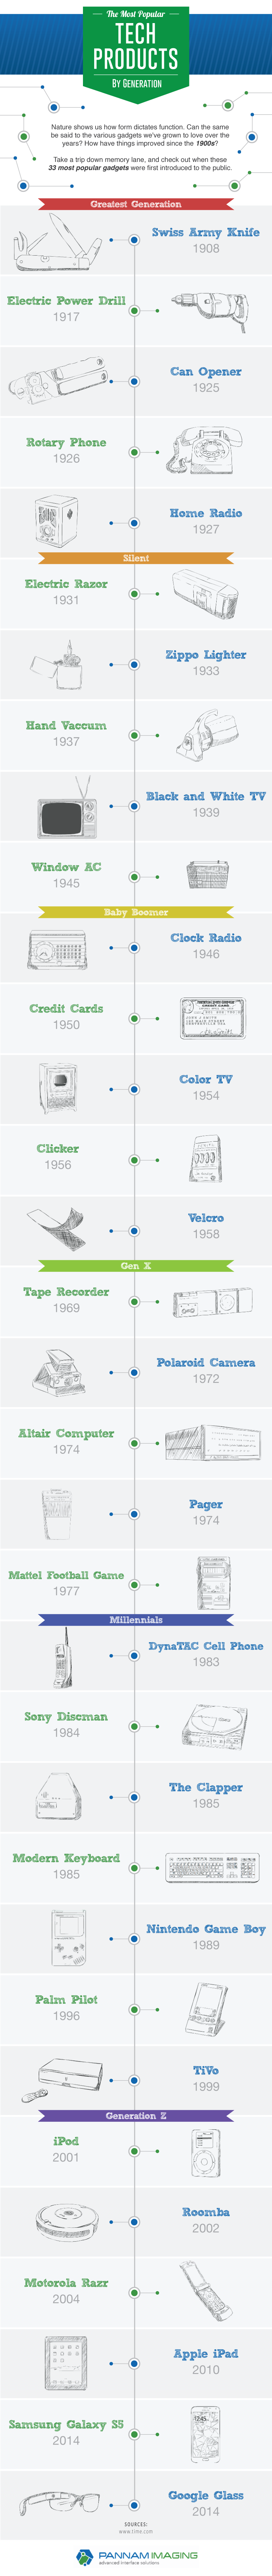 The-Most-Popular-Tech-Products-by-Generation_IG_8